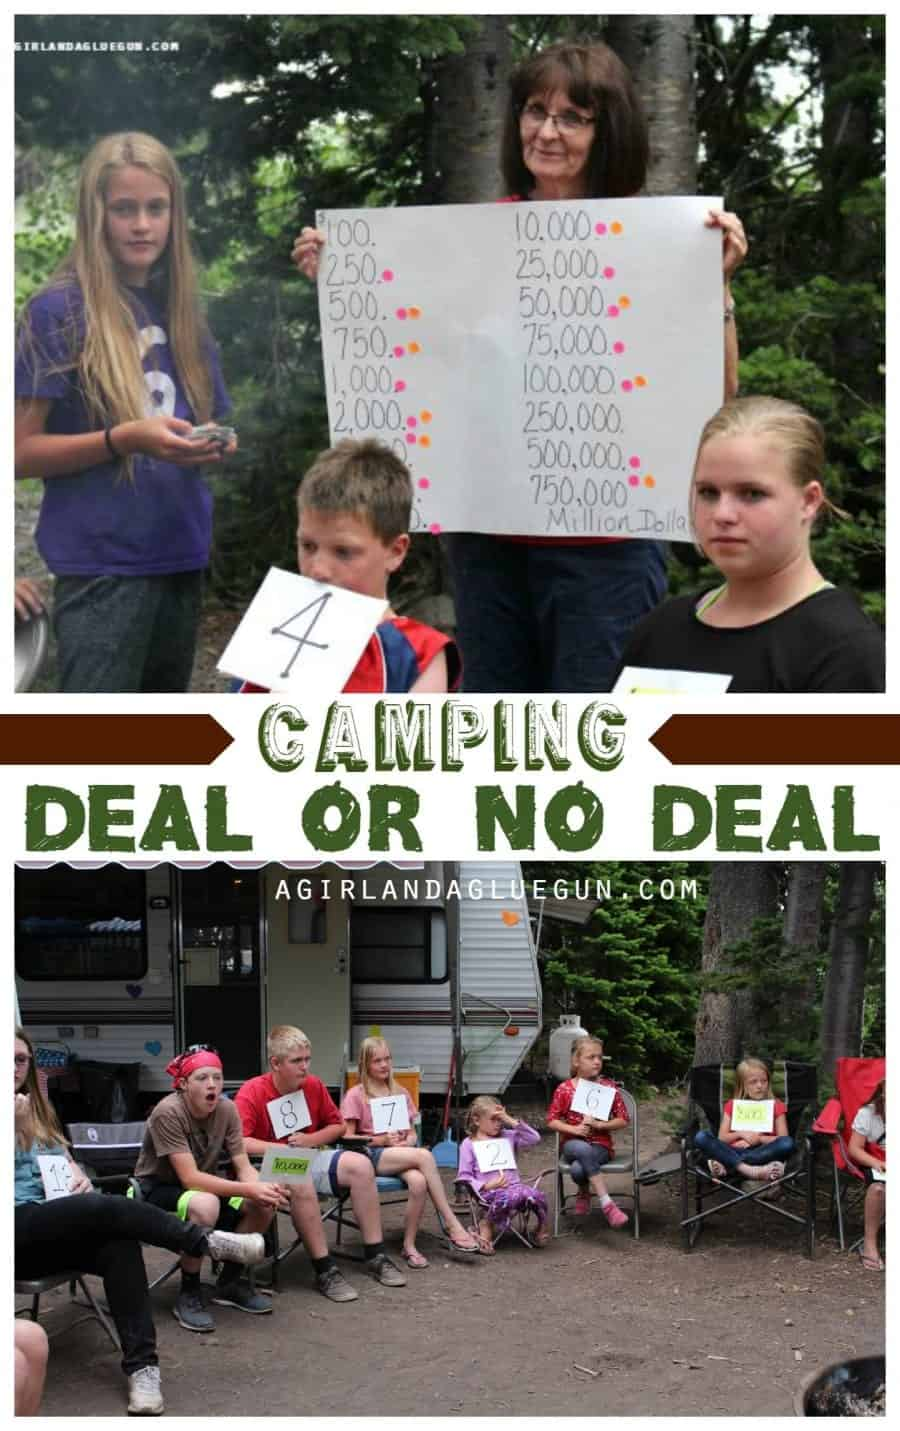 My mom put together this fun deal or no deal game bunch of numbered